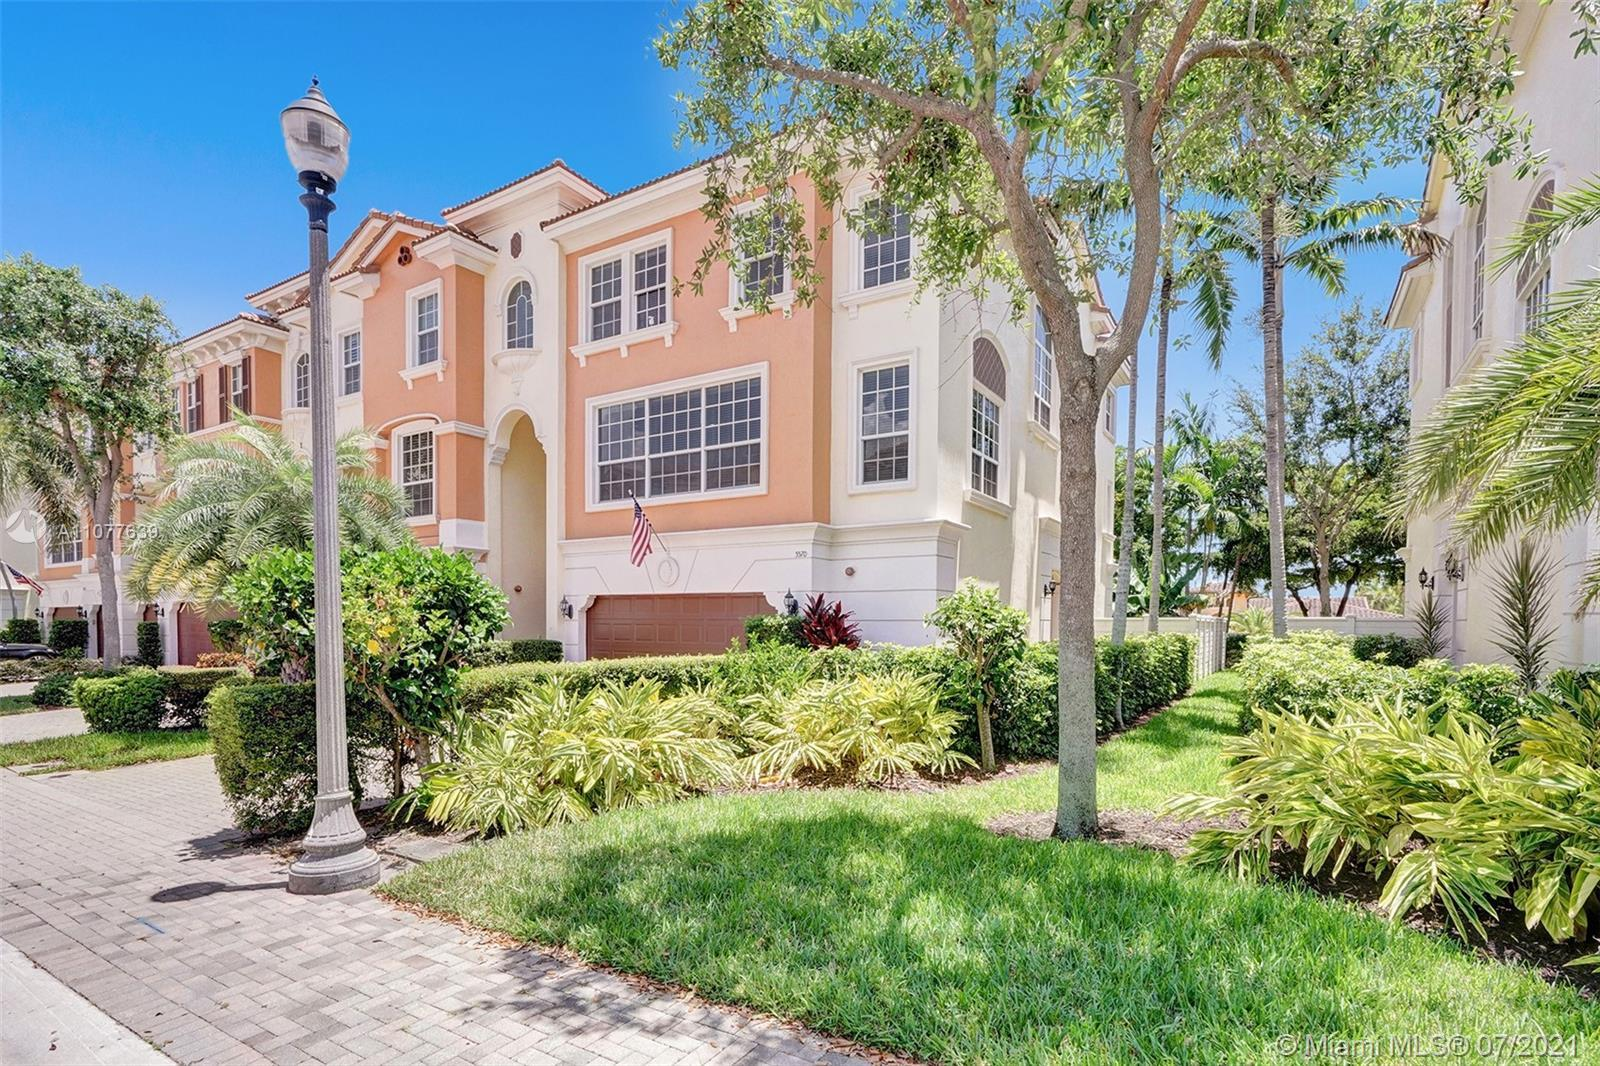 BACK ON MARKET Luxurious tri-level 4 BR/3.5 BA end unit townhouse in East Boca with smart locks & th